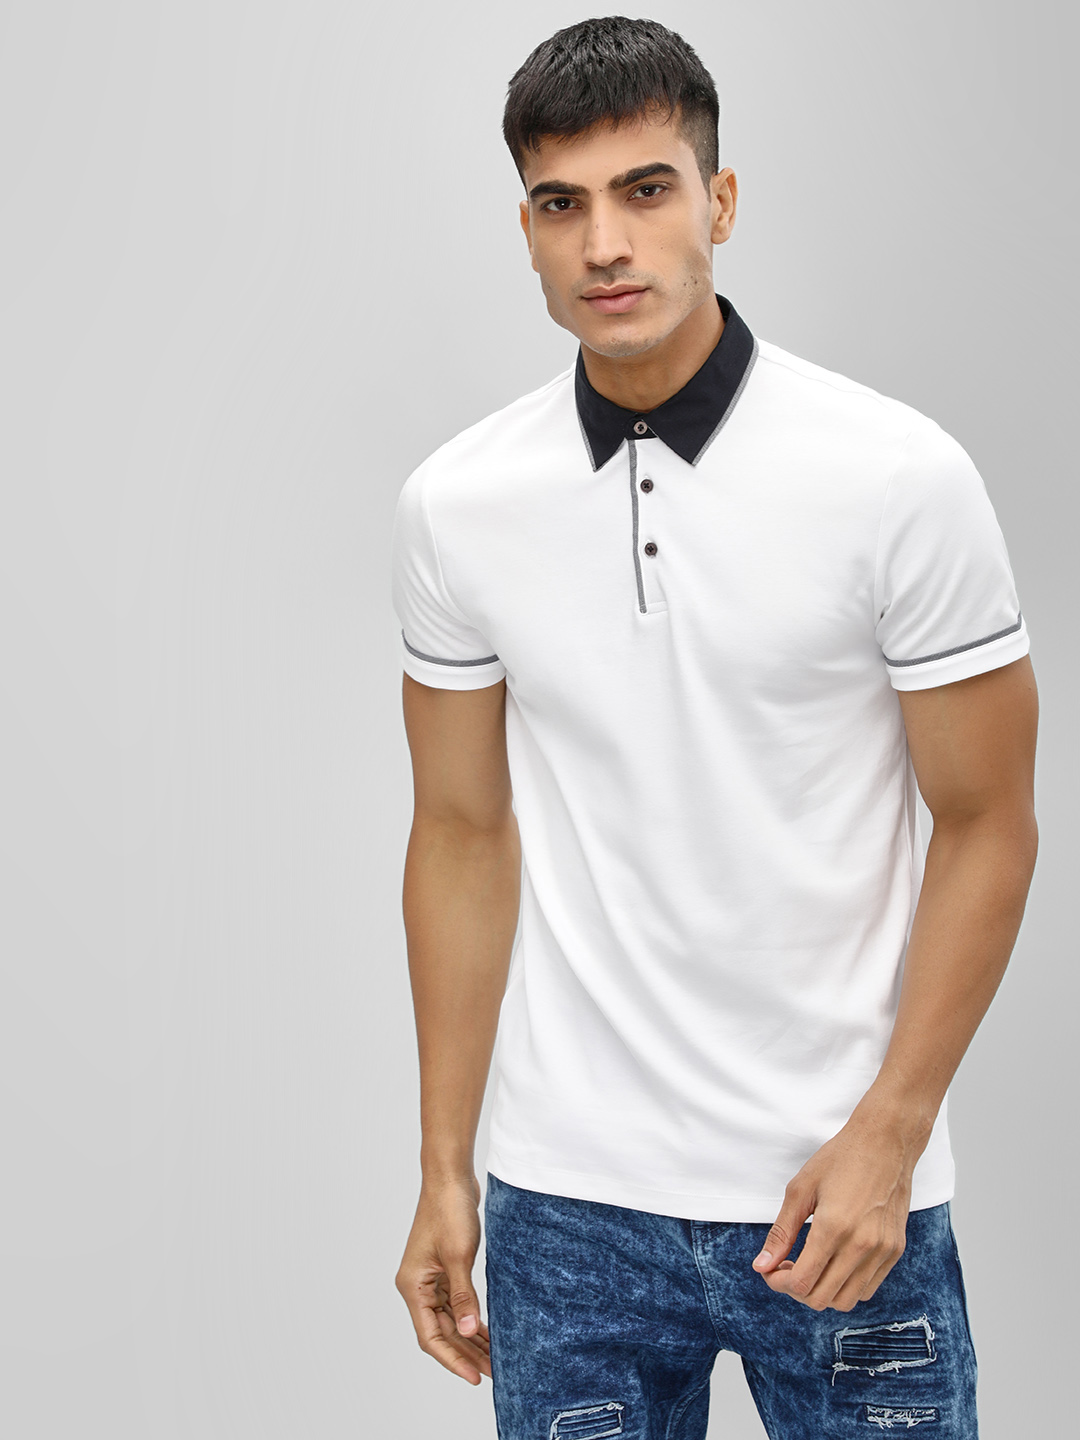 New Look White Woven Collar Polo Shirt 1